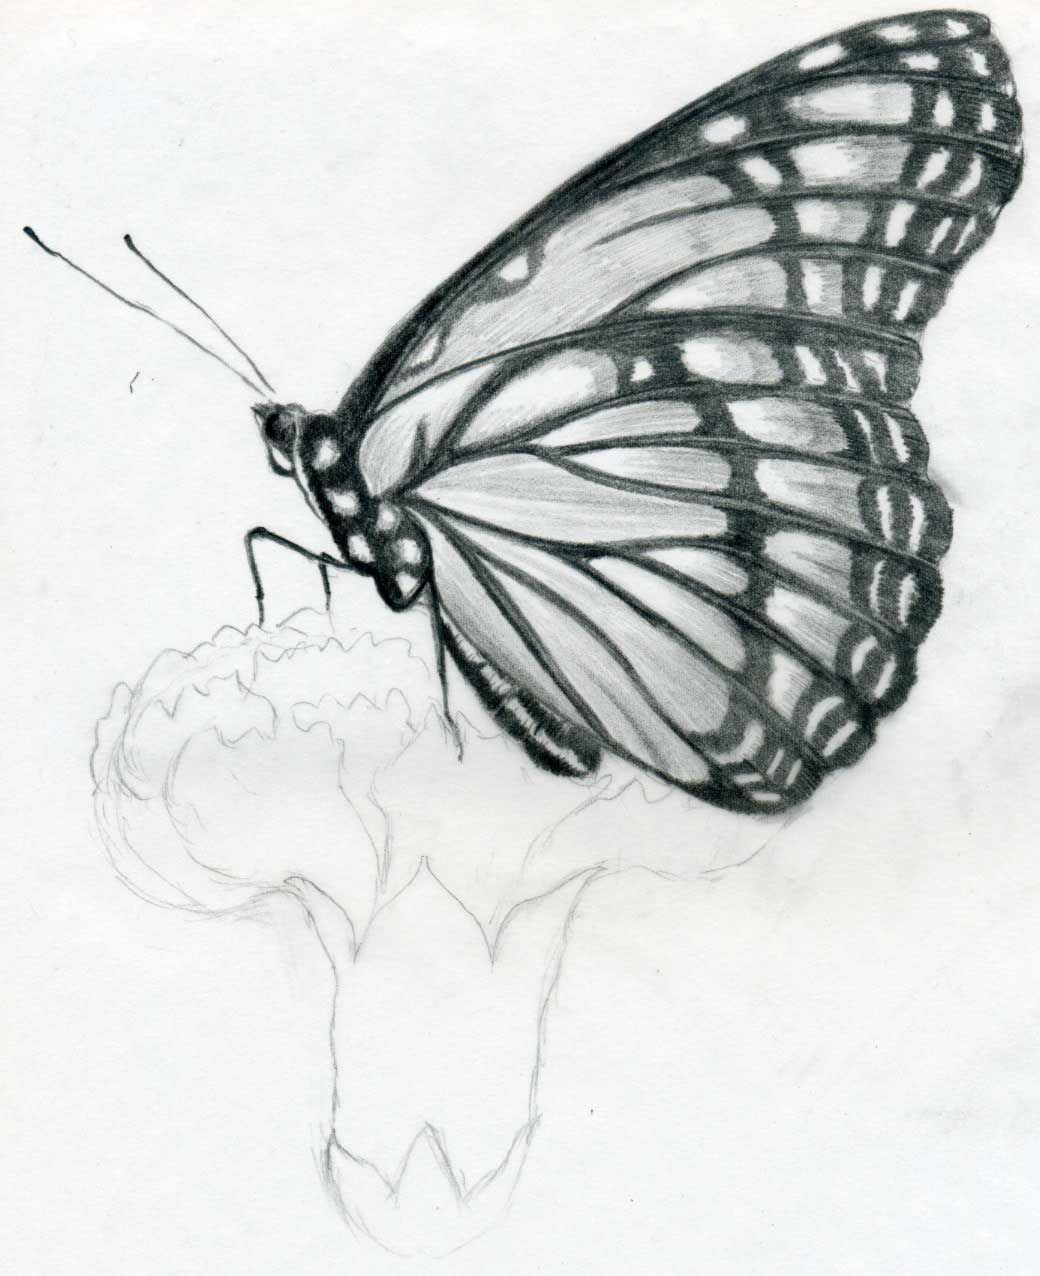 Sketches drawing butterfly sketches wallpapers cute birds sketches wallpapers